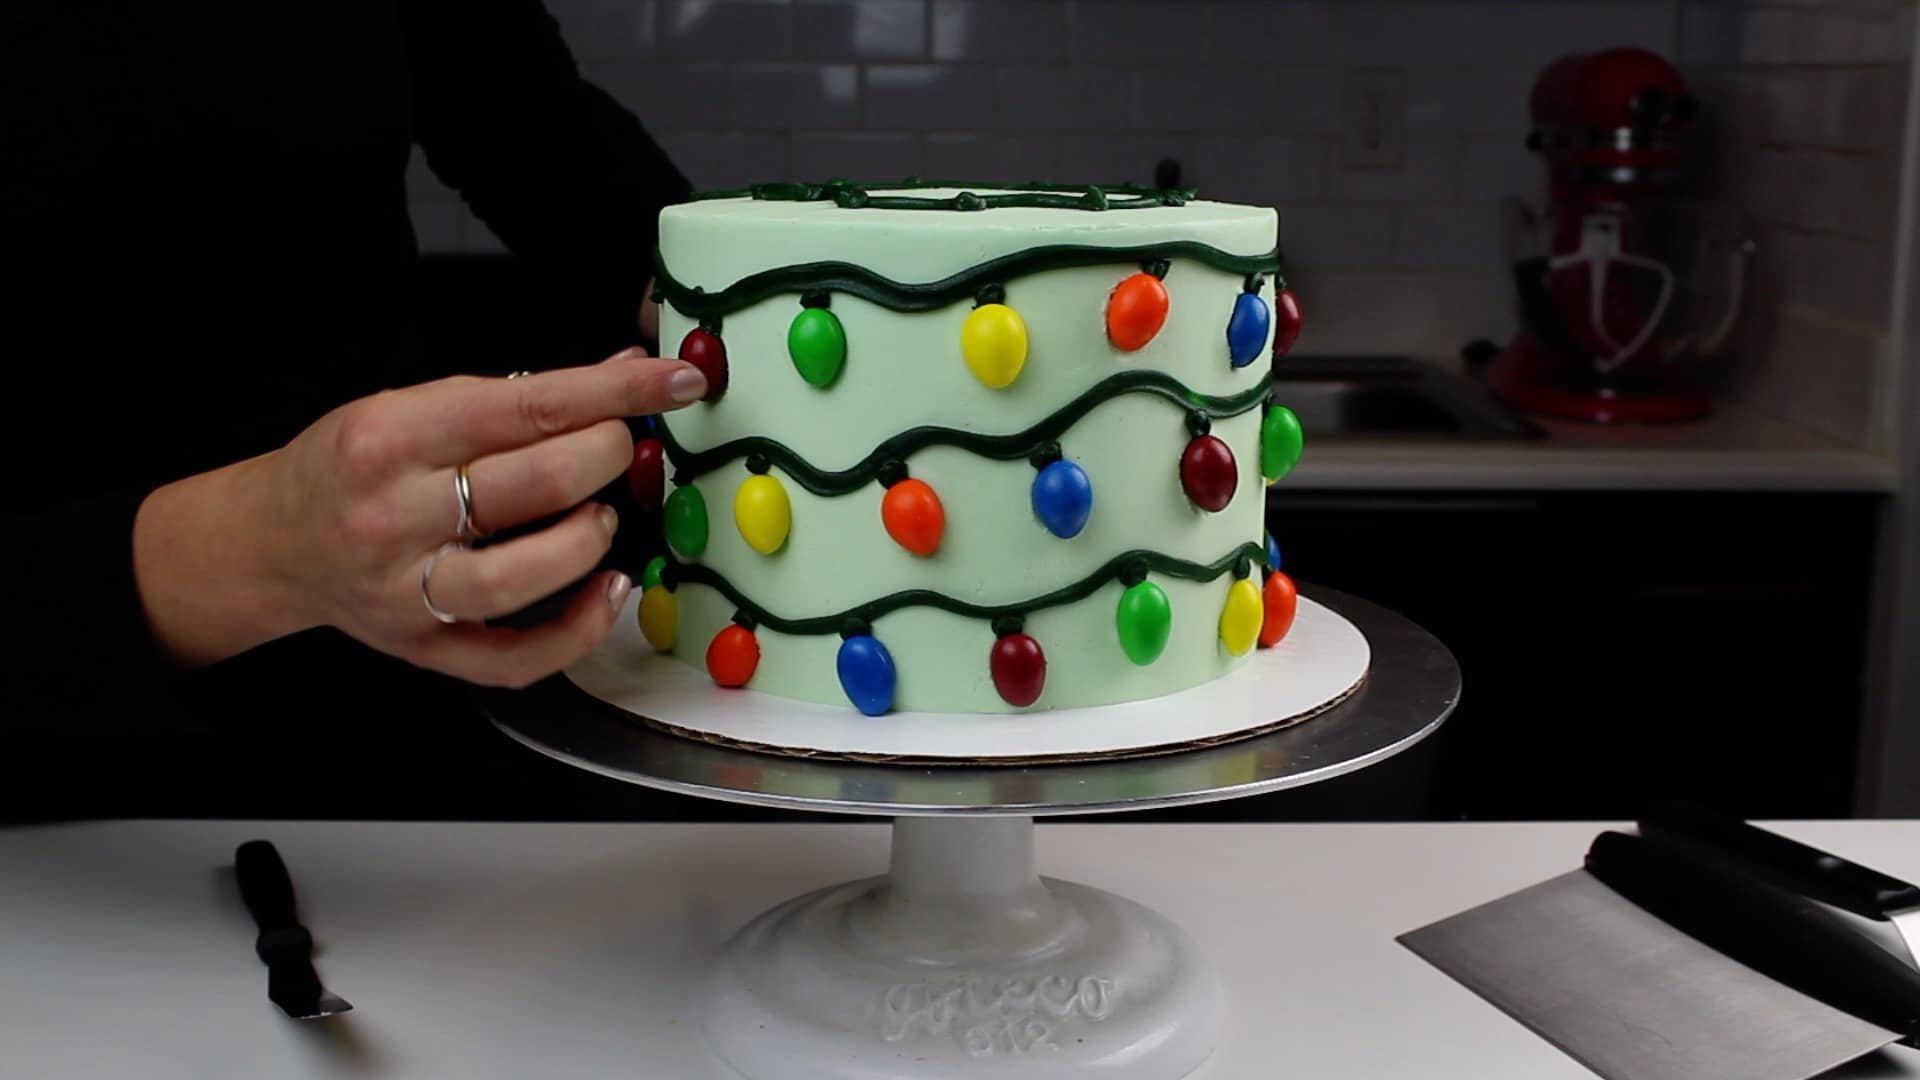 Image of adding Almond M&Ms to cake to look like christmas lights